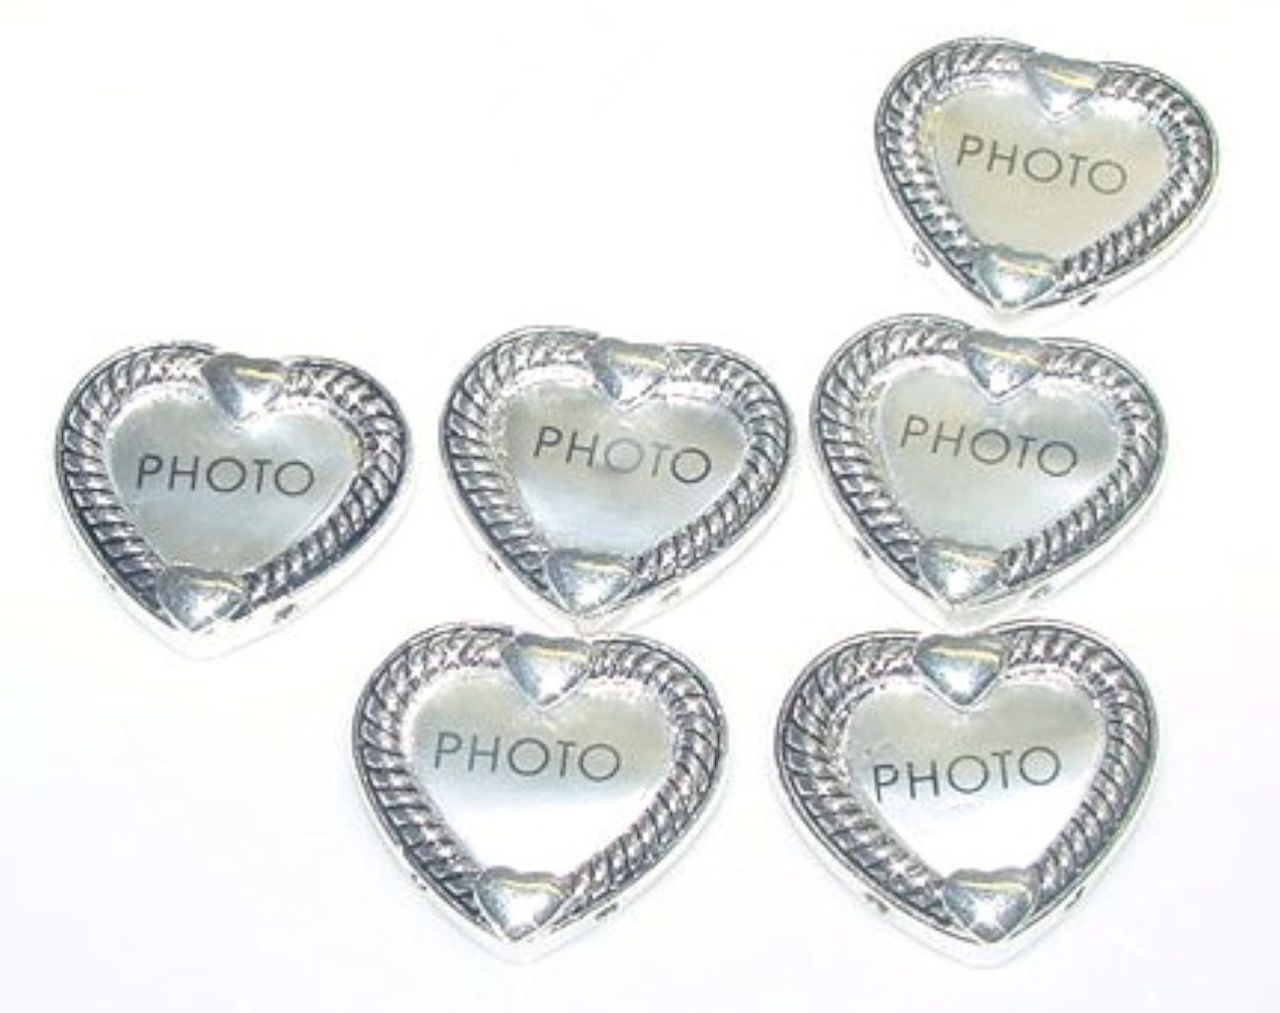 6 heart shaped photo picture frame 2 hole beads holder mobile 6 heart shaped photo picture frame 2 hole beads holder mobile boutique jeuxipadfo Gallery